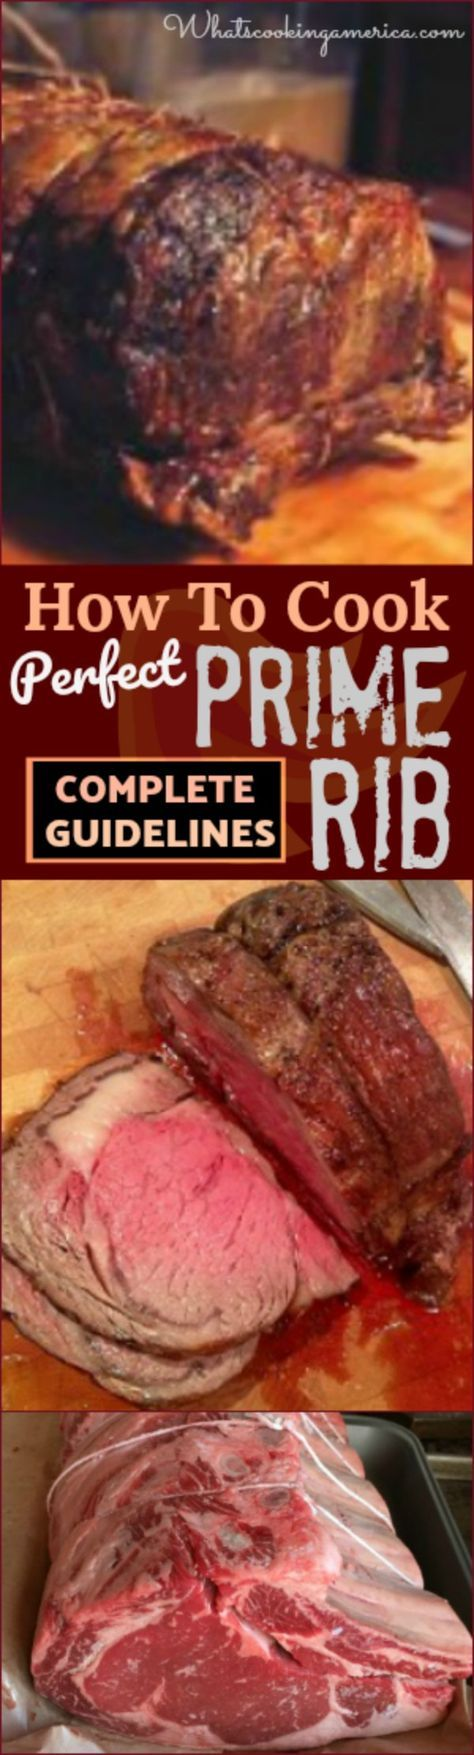 A complete resource guide including purchasing, preparing, internal meat temperatures and cooking times.